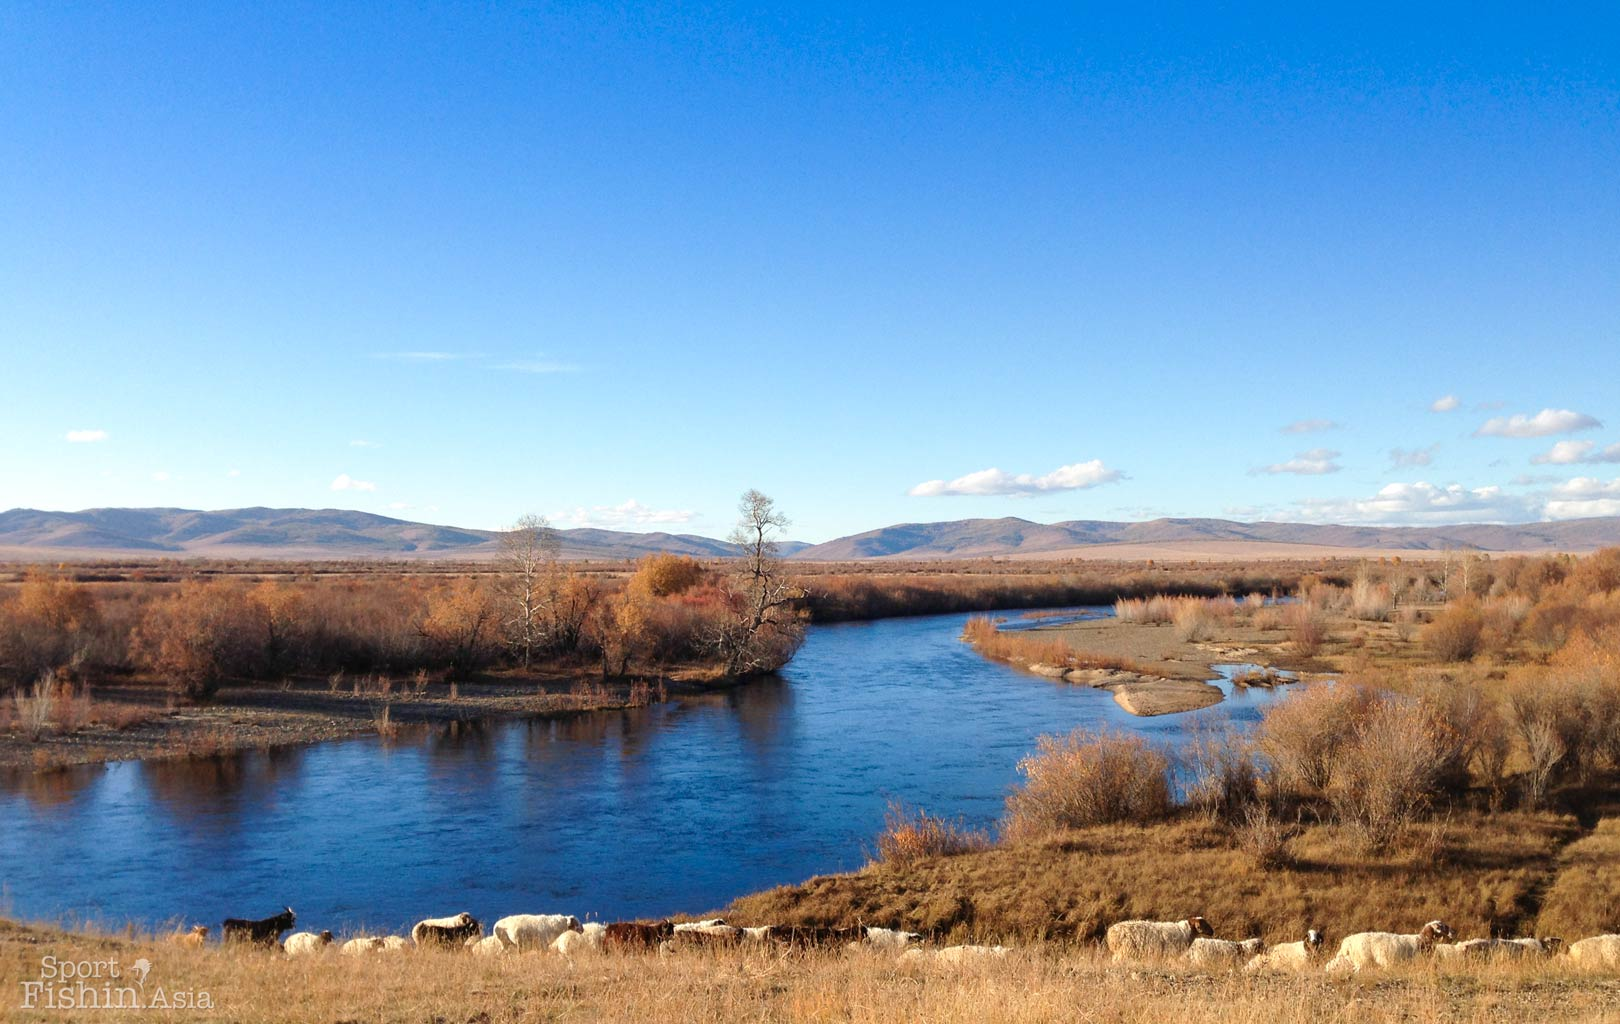 Beautiful Mongolia autumn landscape river scenery